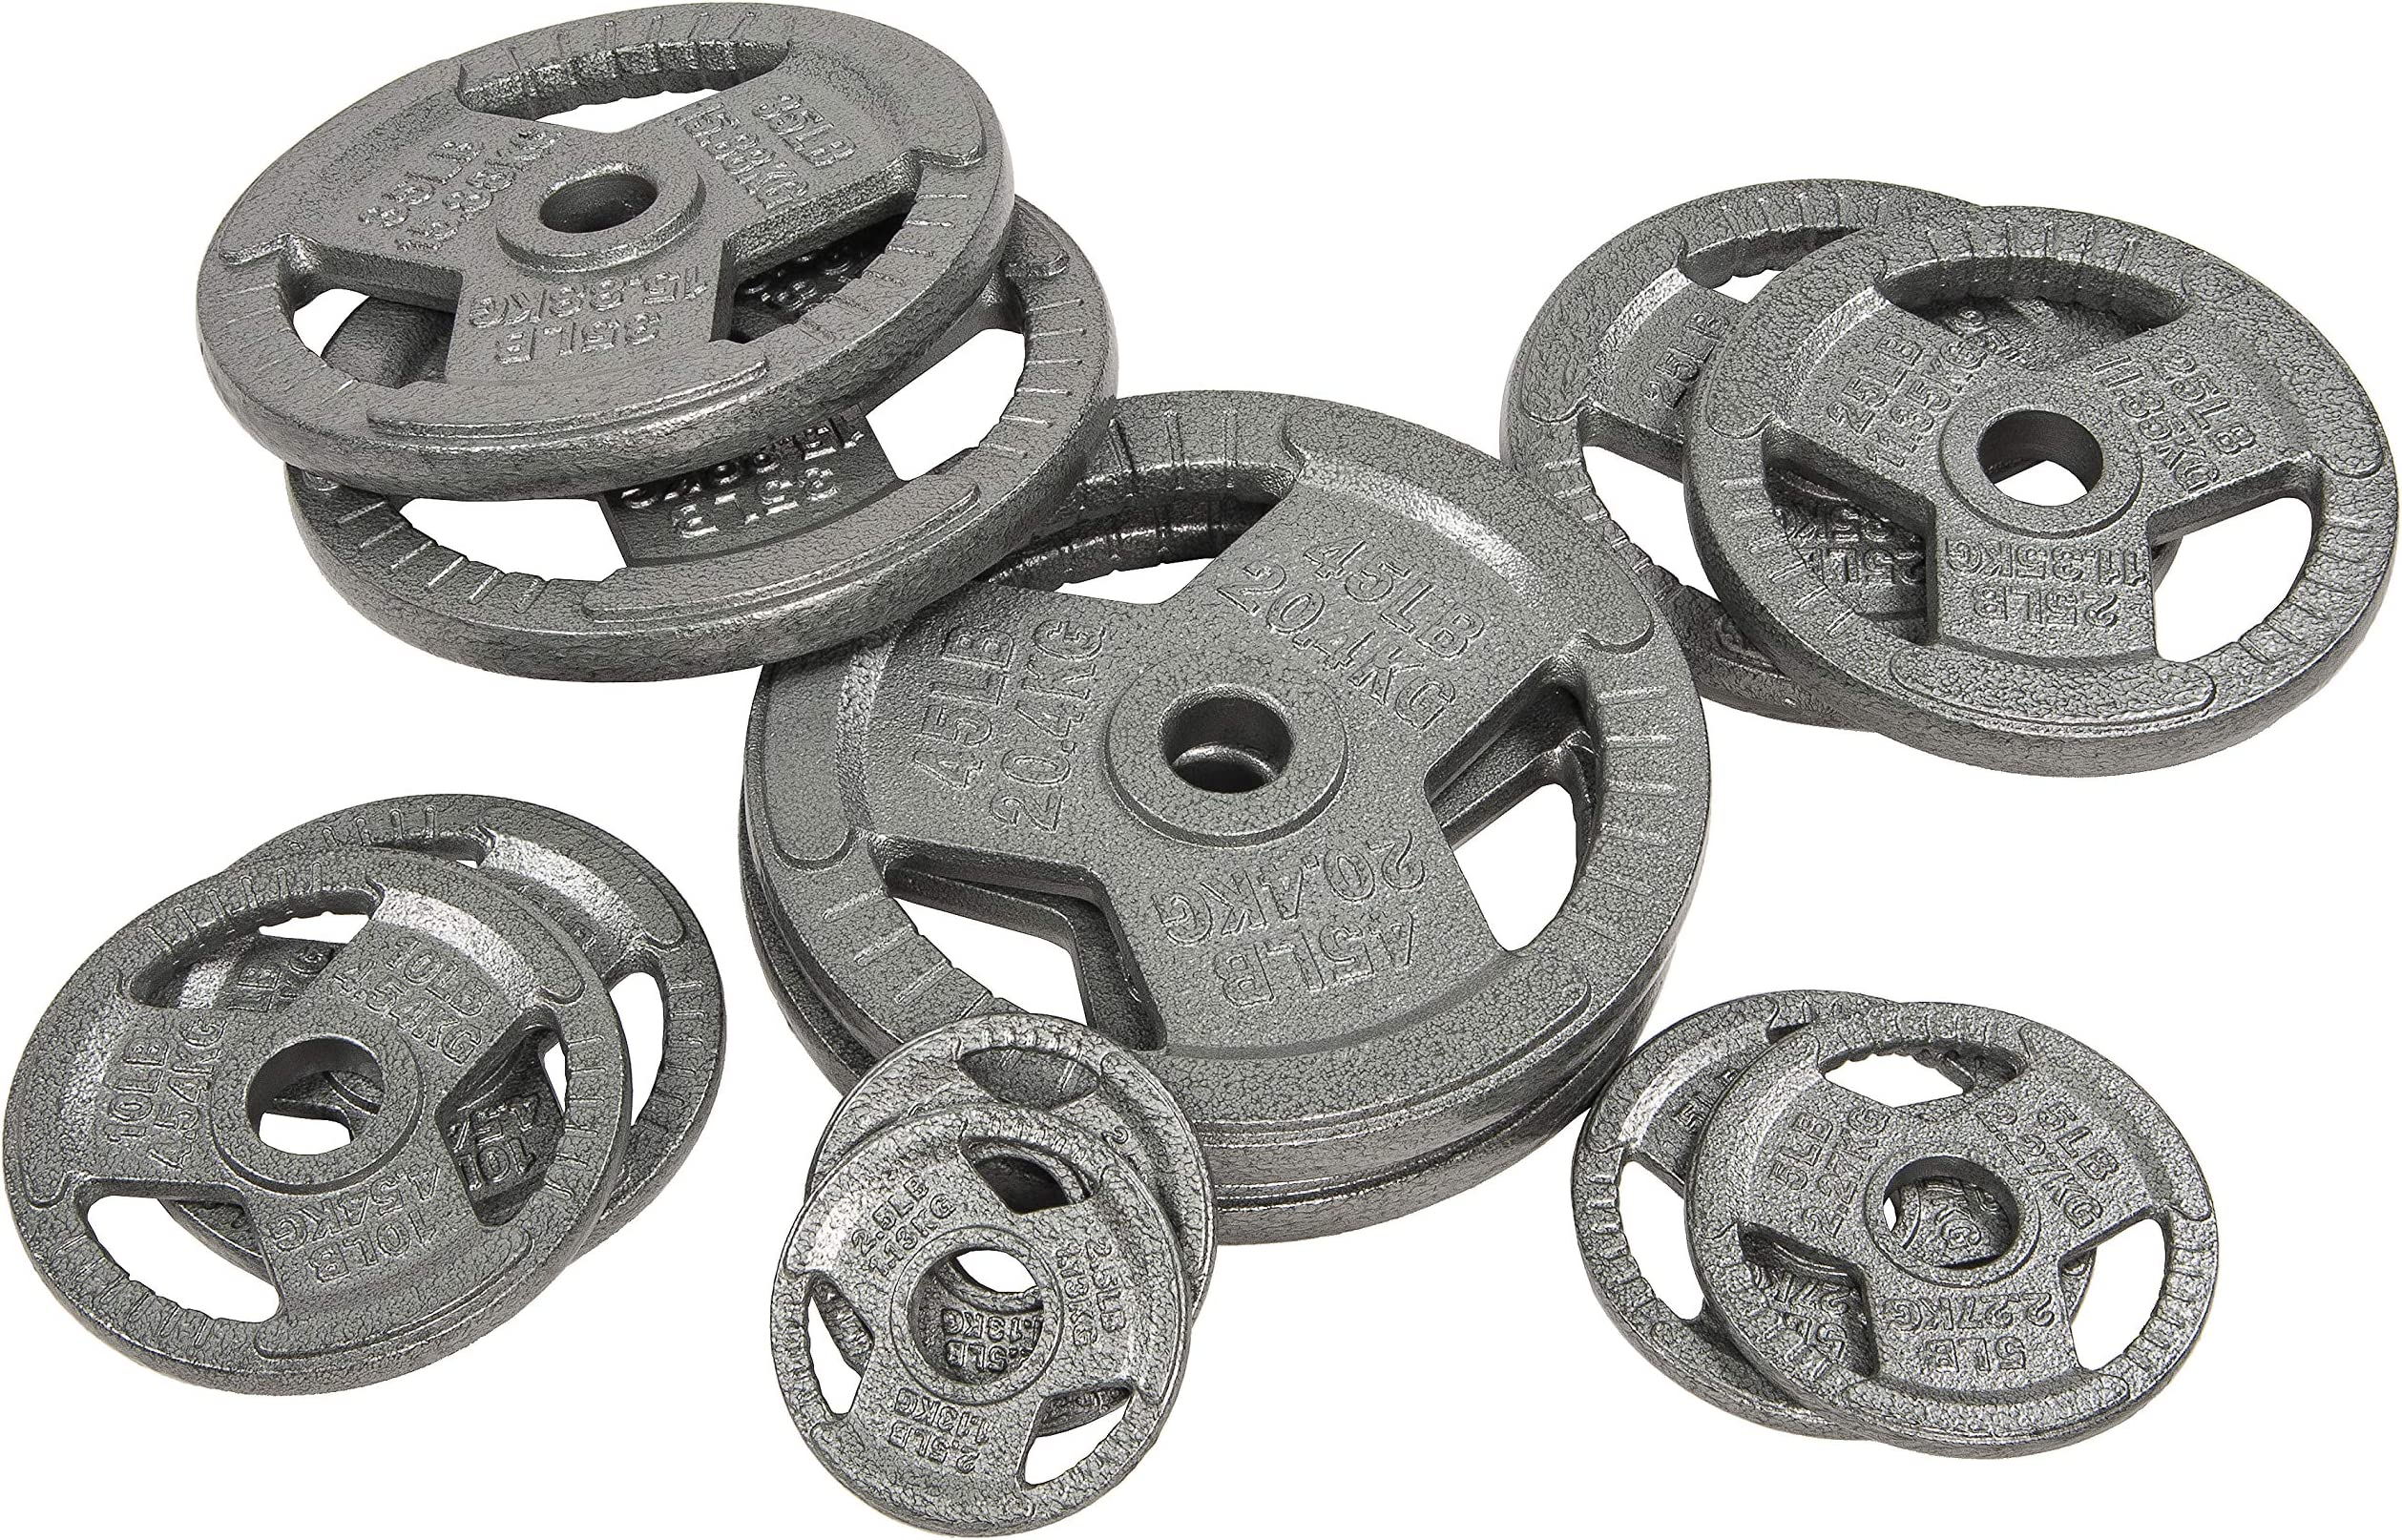 Sporzon! Cast Iron 1-Inch or 2-Inch Grip Plate Weight Plate for Strength Training, Weightlifting and Crossfit, Single